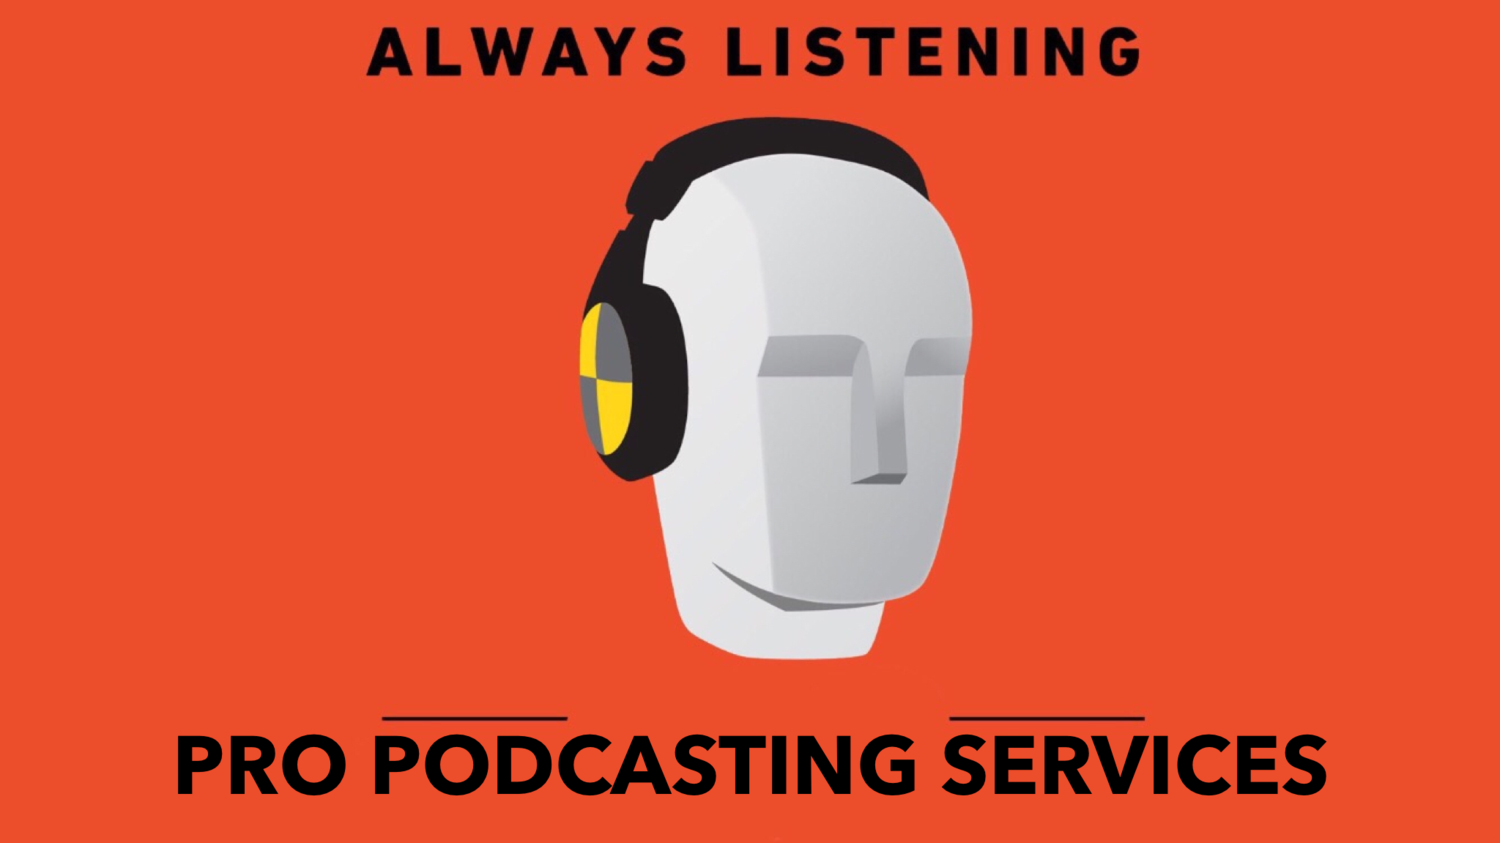 JoelSharpton com Blog: The Rogues Life — Pro Podcasting Services